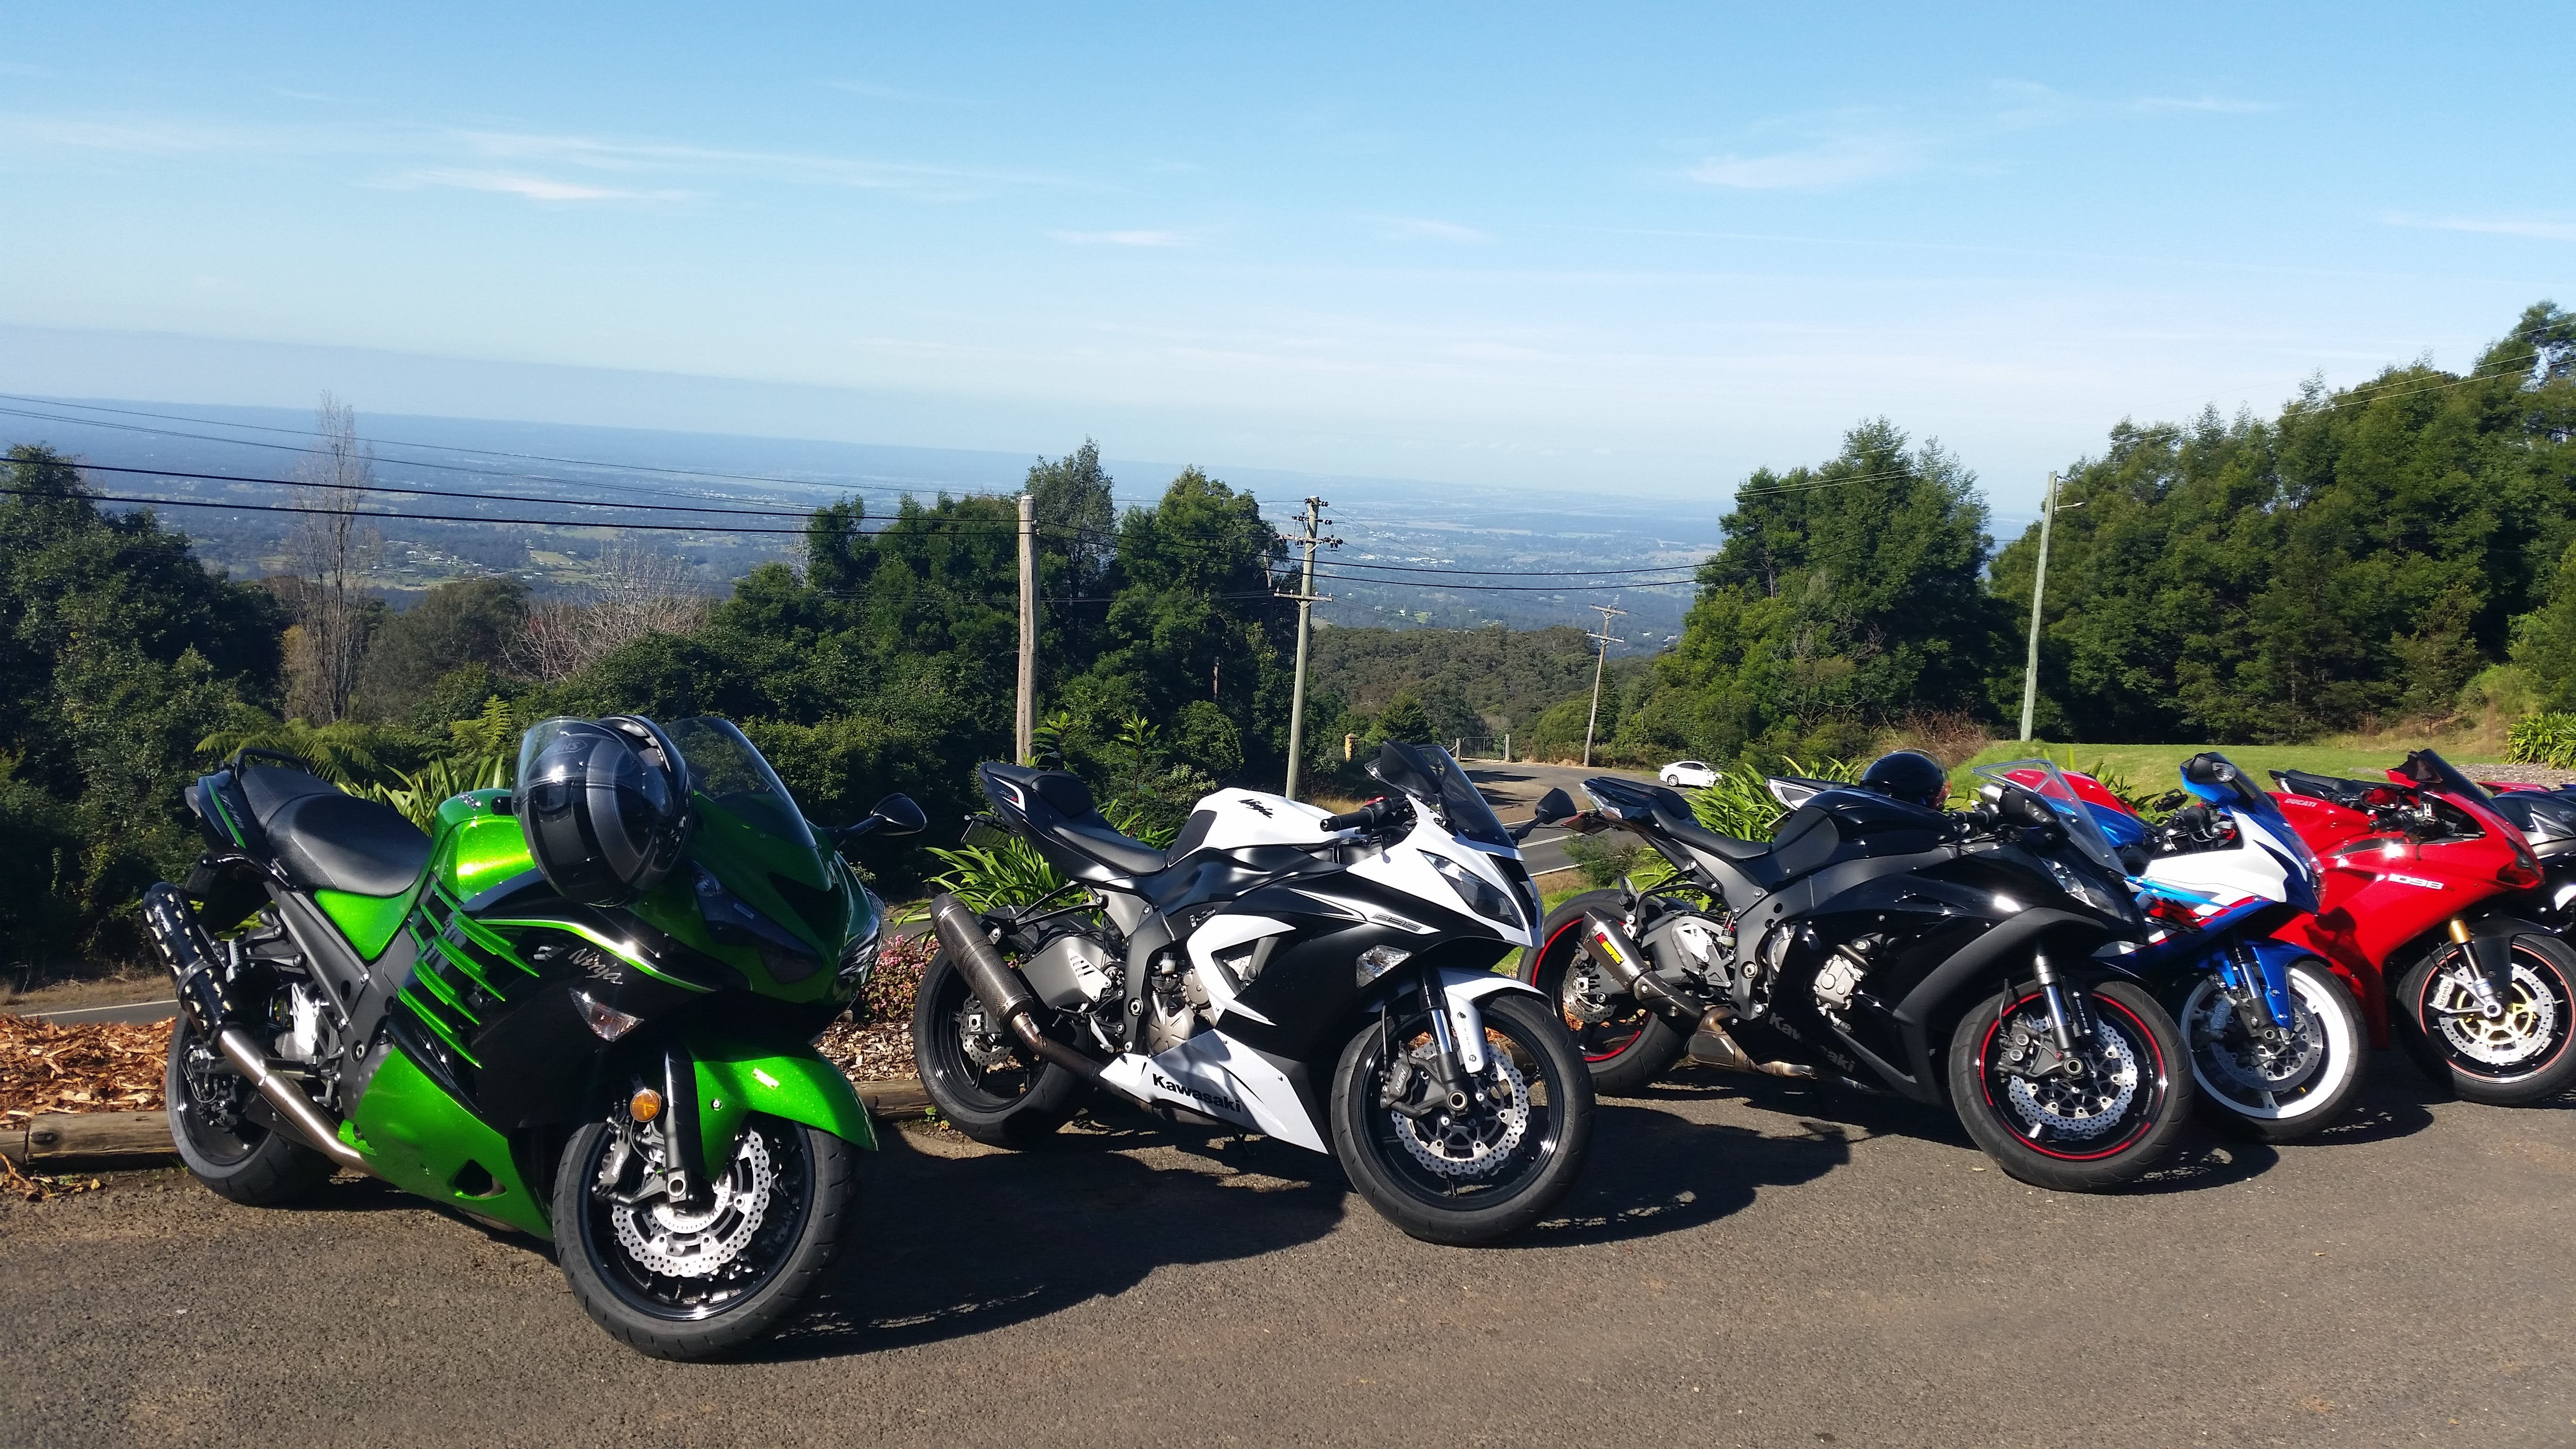 5 sport motorcycles all lined up